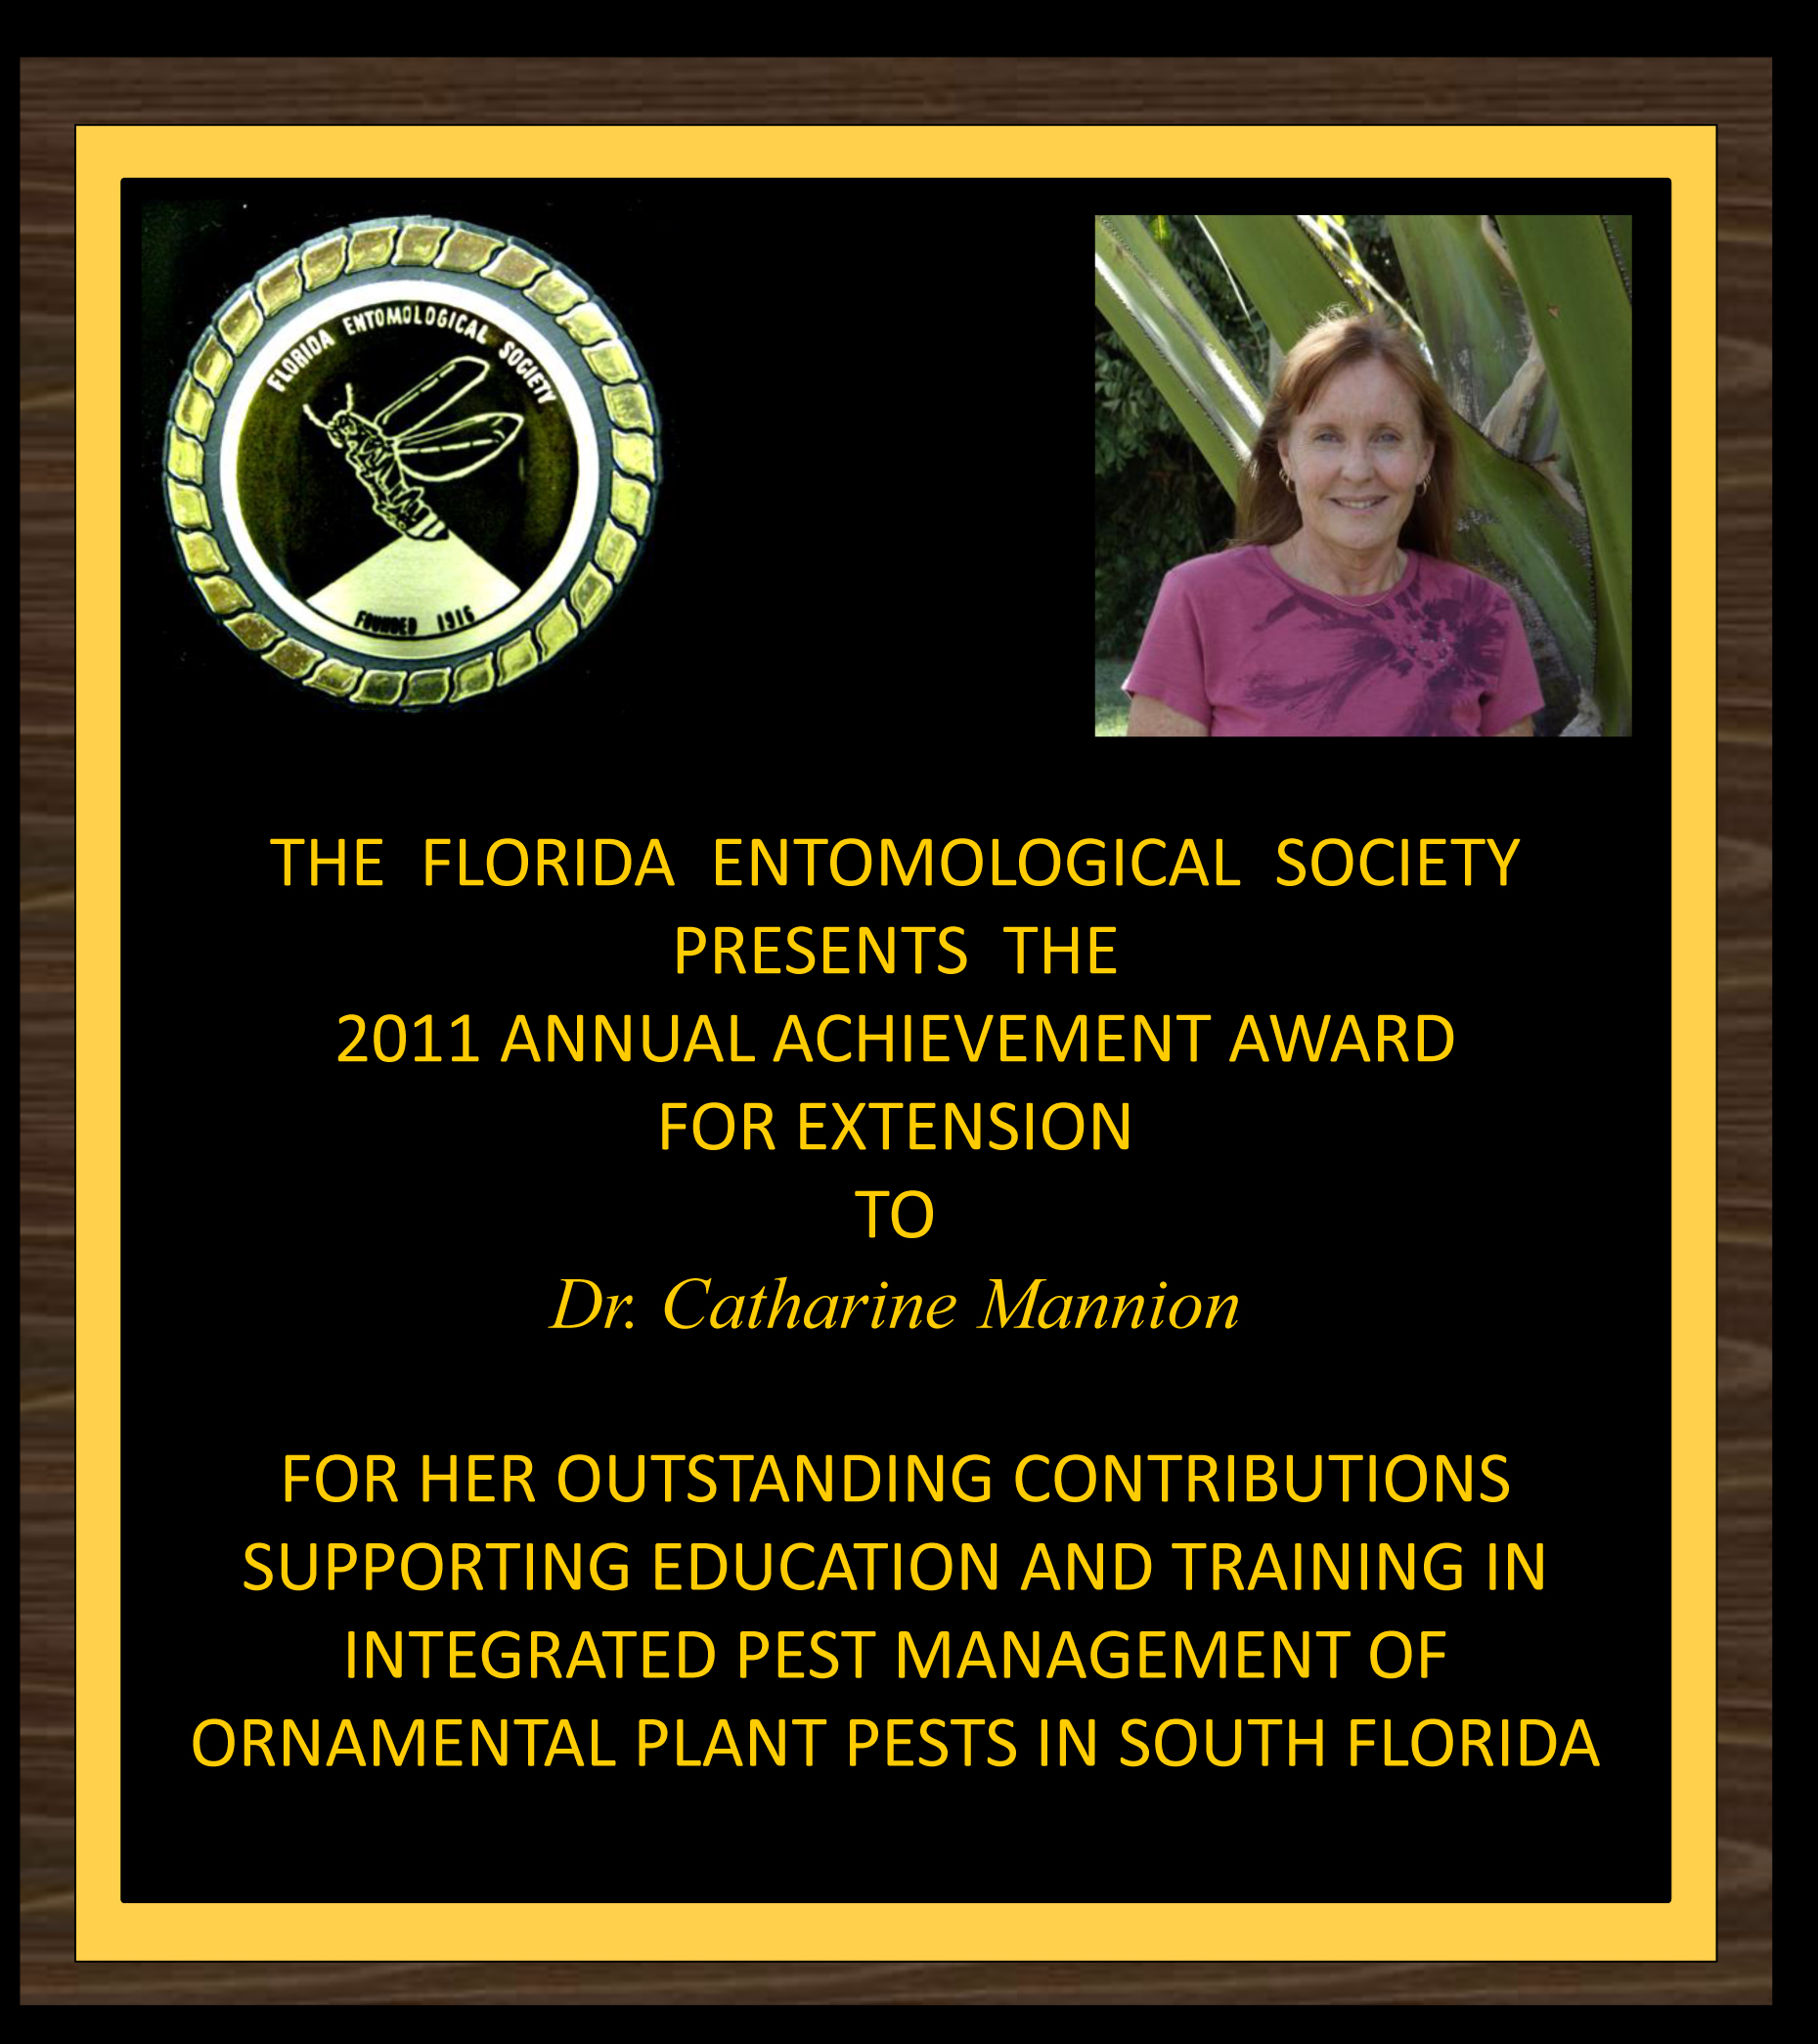 Catharine Mannion receives 2011 FES Achievement Award for Extension